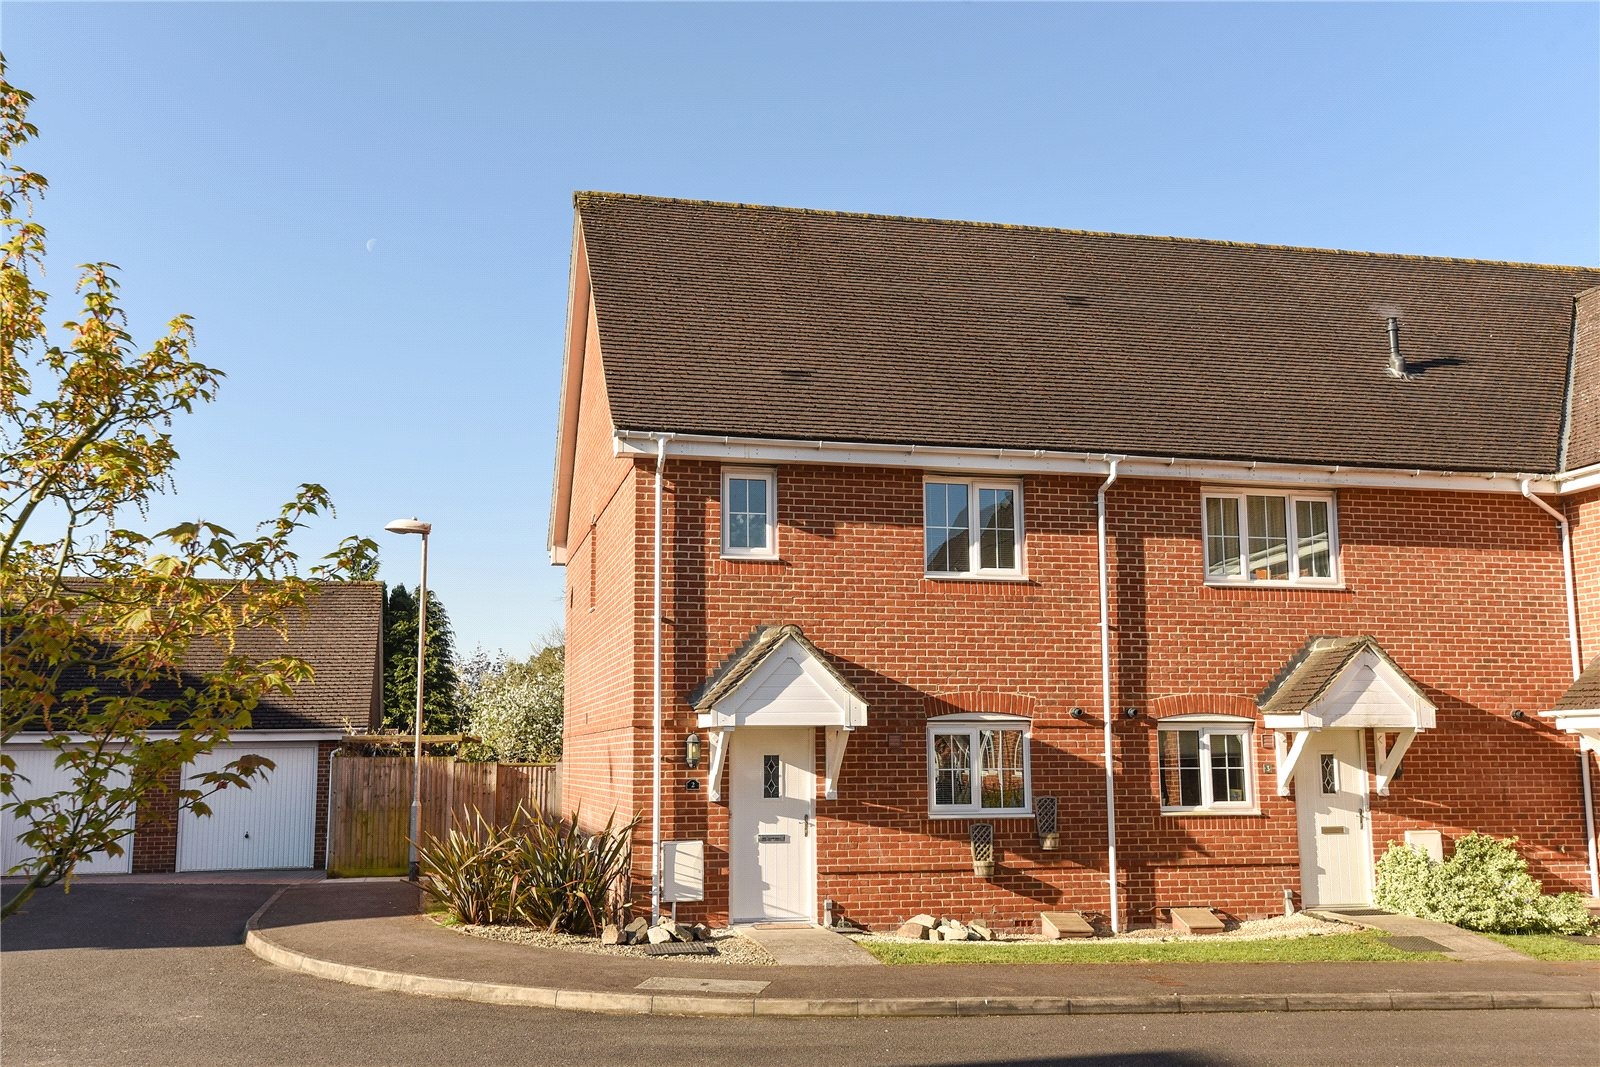 3 Bedrooms End Of Terrace House for sale in Alexandra Close, College Town, Sandhurst, Berkshire, GU47